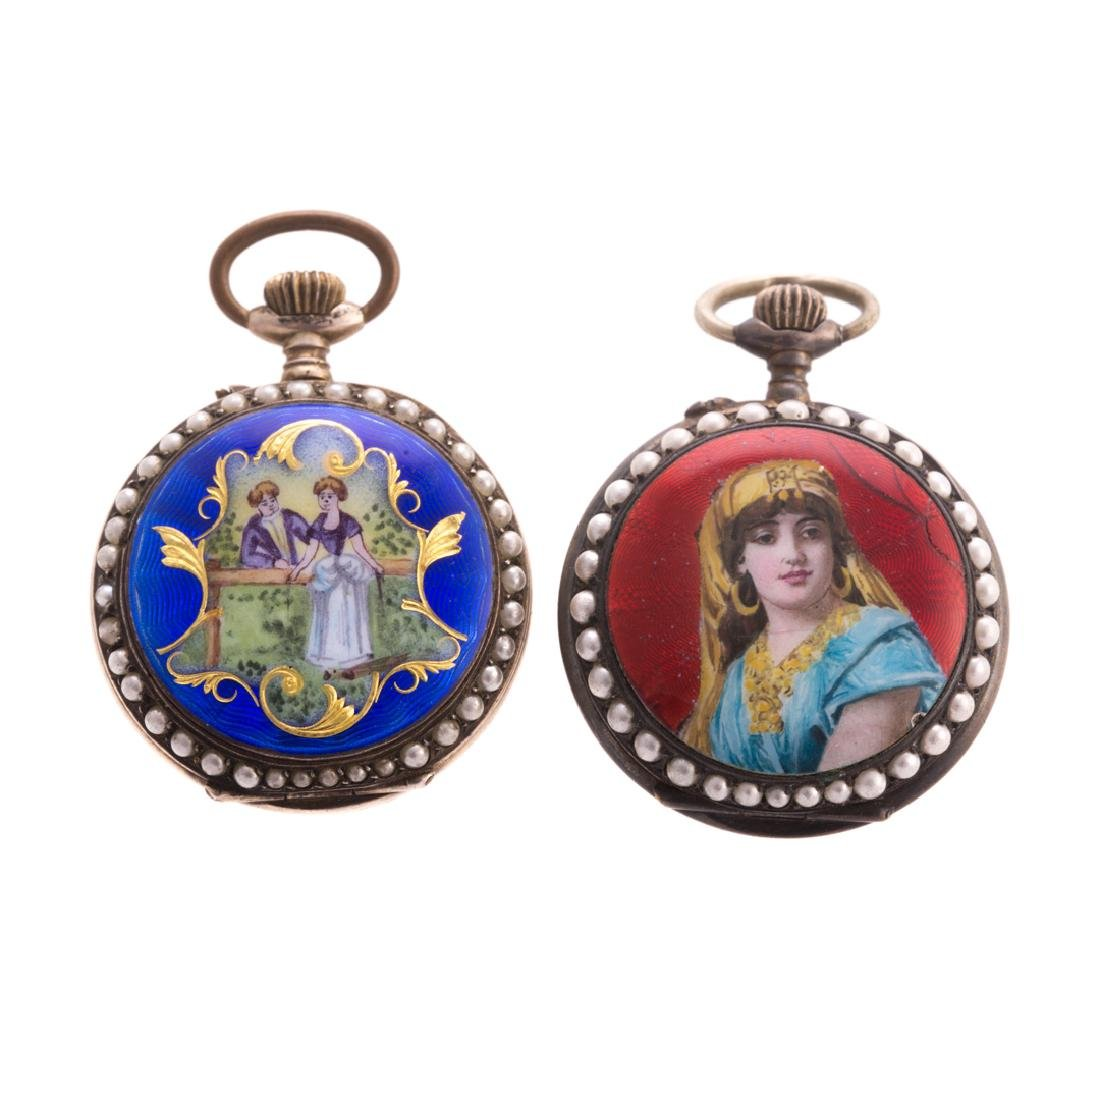 A Pair of Lady's Enamel Pendant Watches